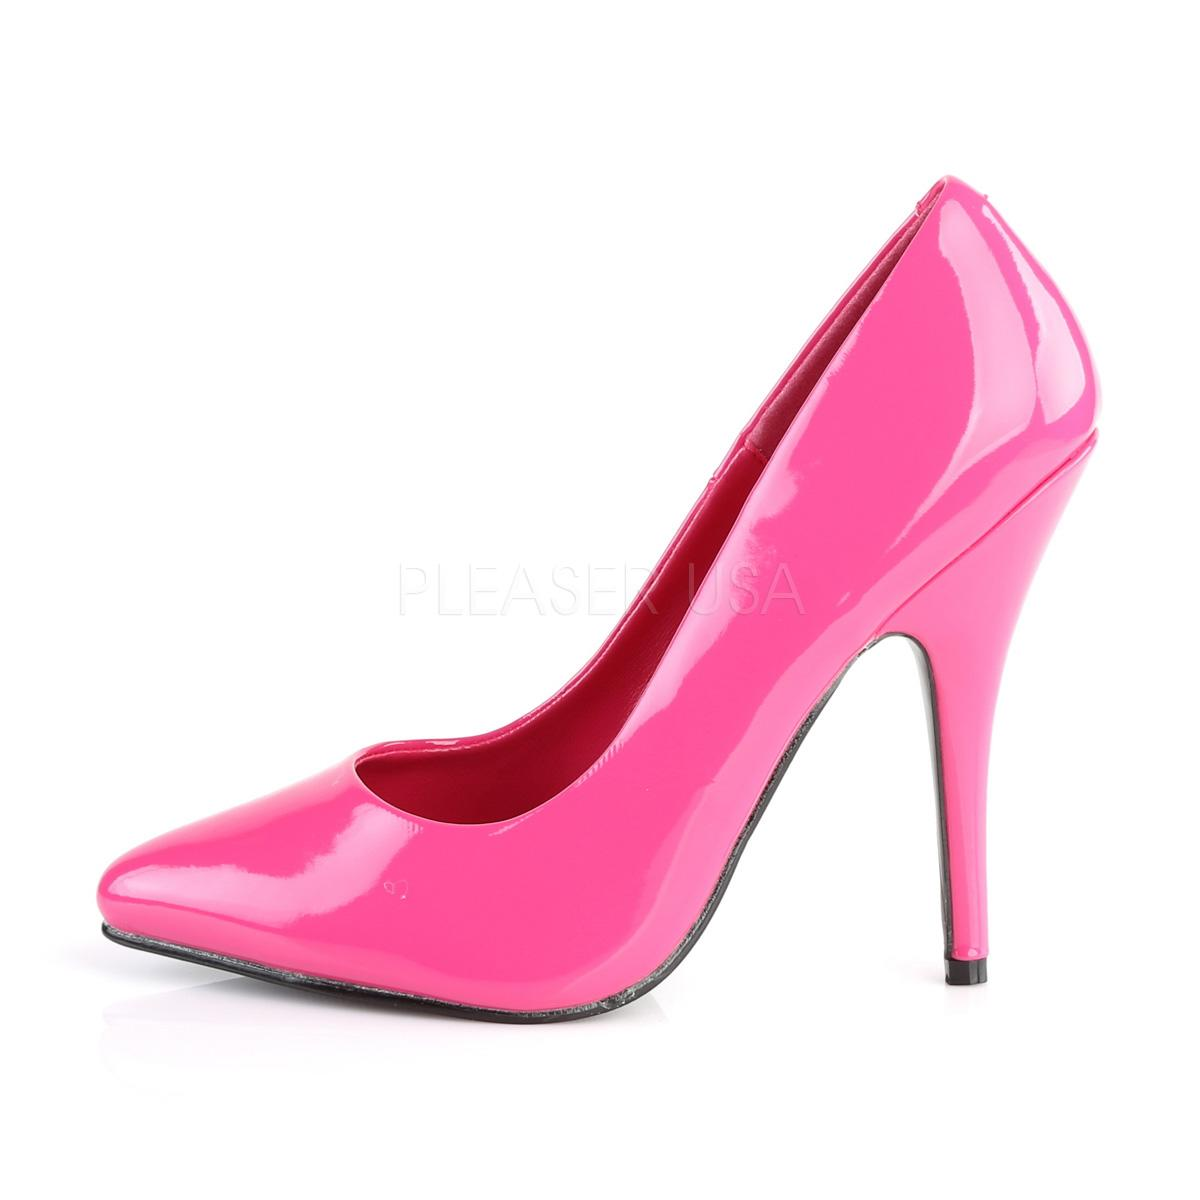 Hot Pink Patent Court Shoe